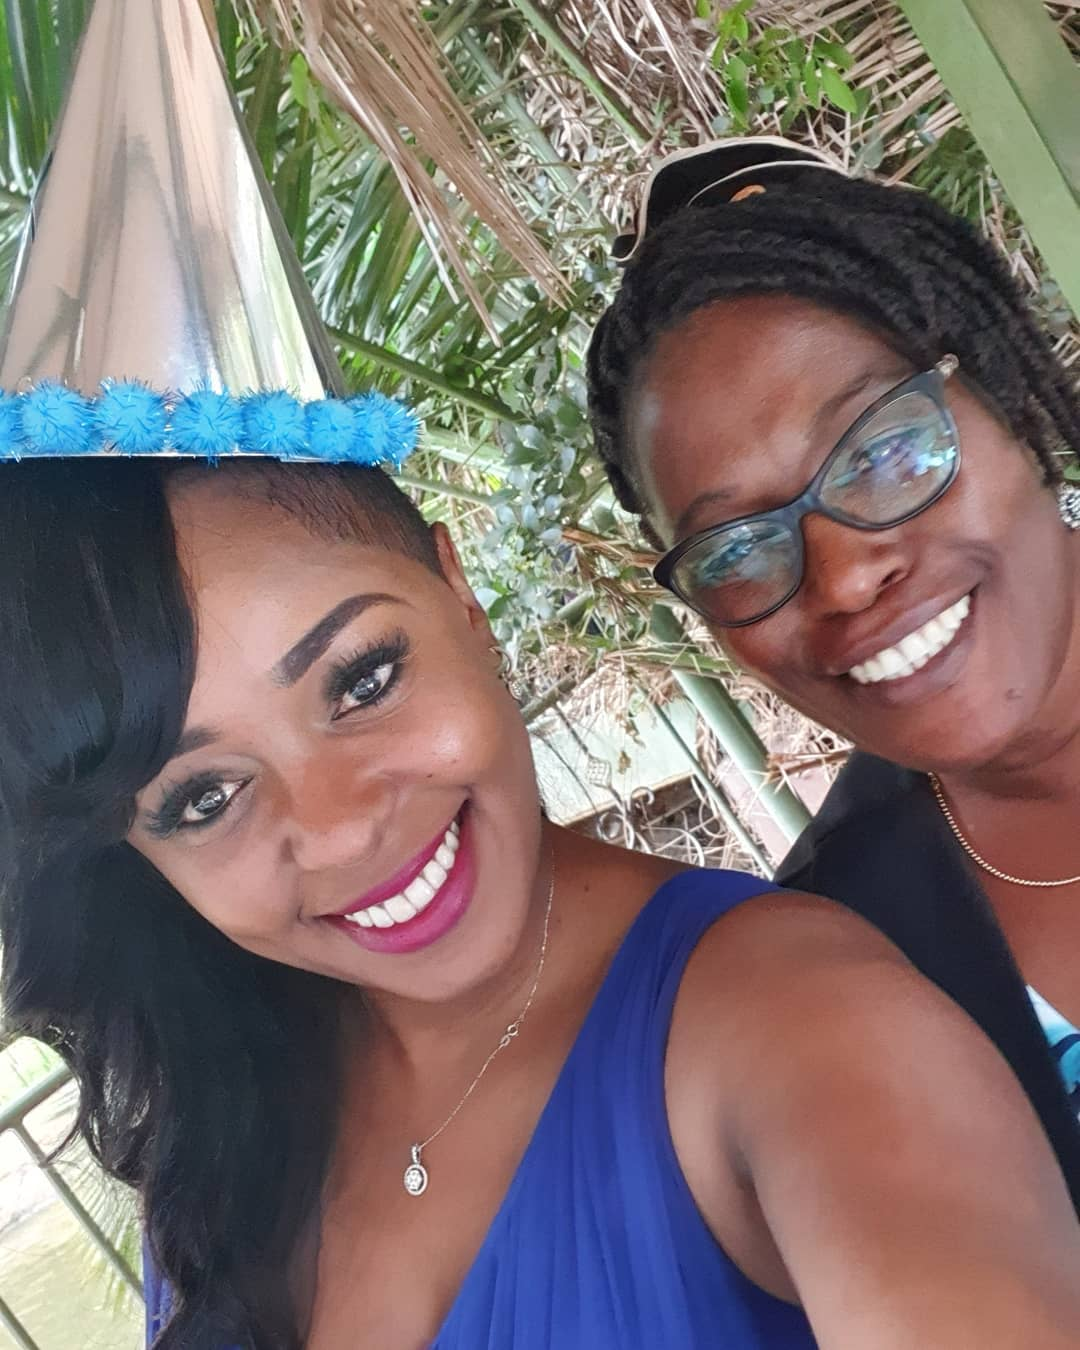 66821840 505101656894629 3259477020094396109 n - Lillian Muli's ageless mother graces her son with Jared Nevaton's birthday